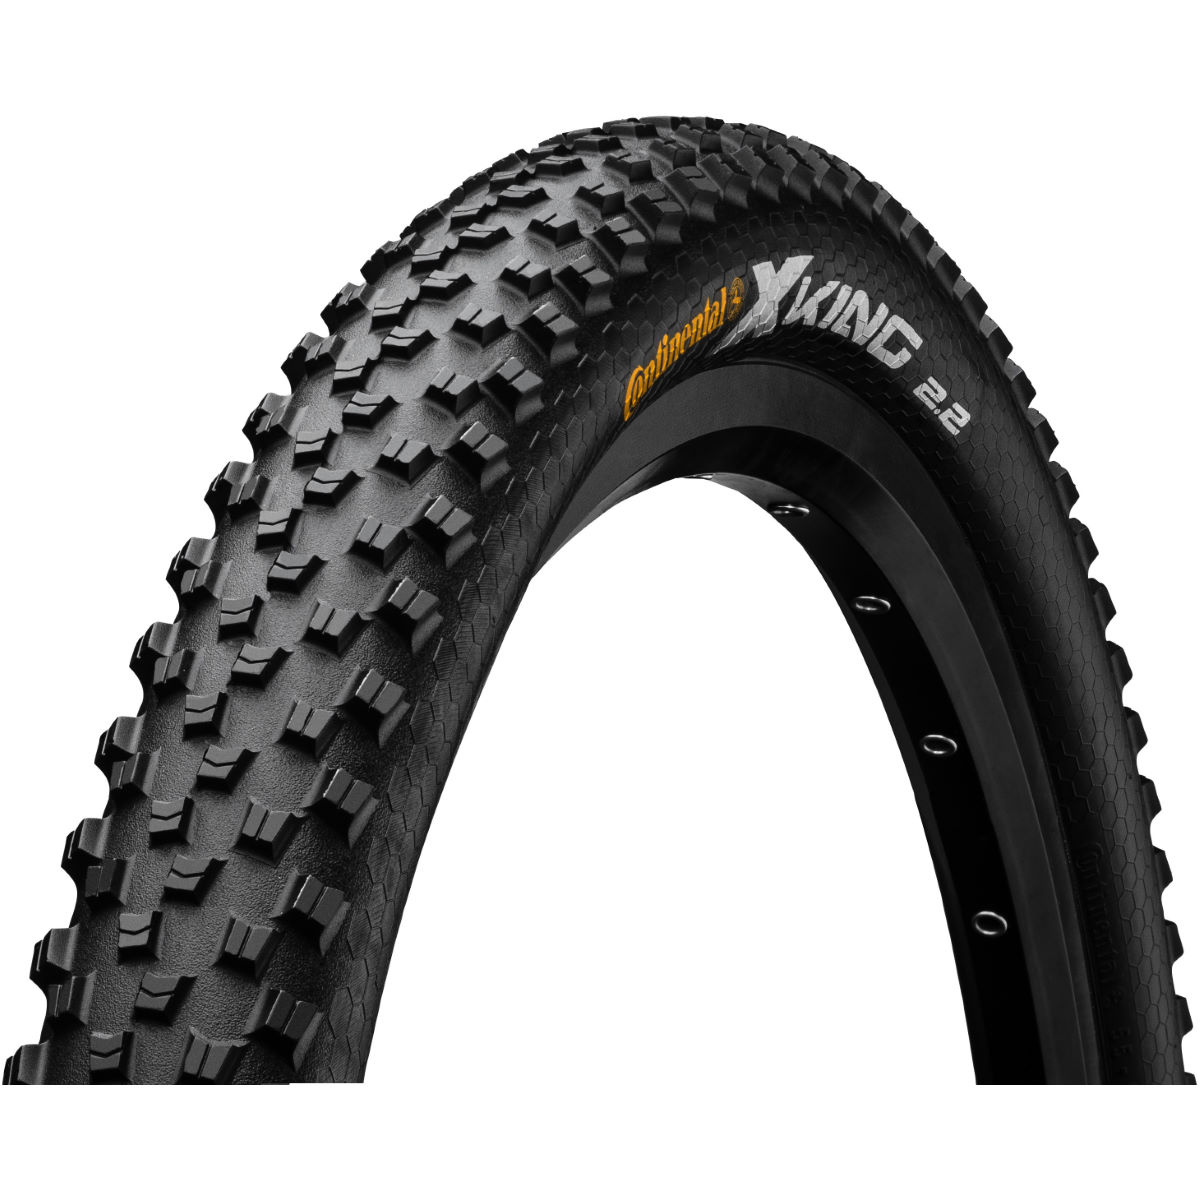 Pneu VTT Continental X King (souple, ProTection, 2018) - 2.6' 27.5'